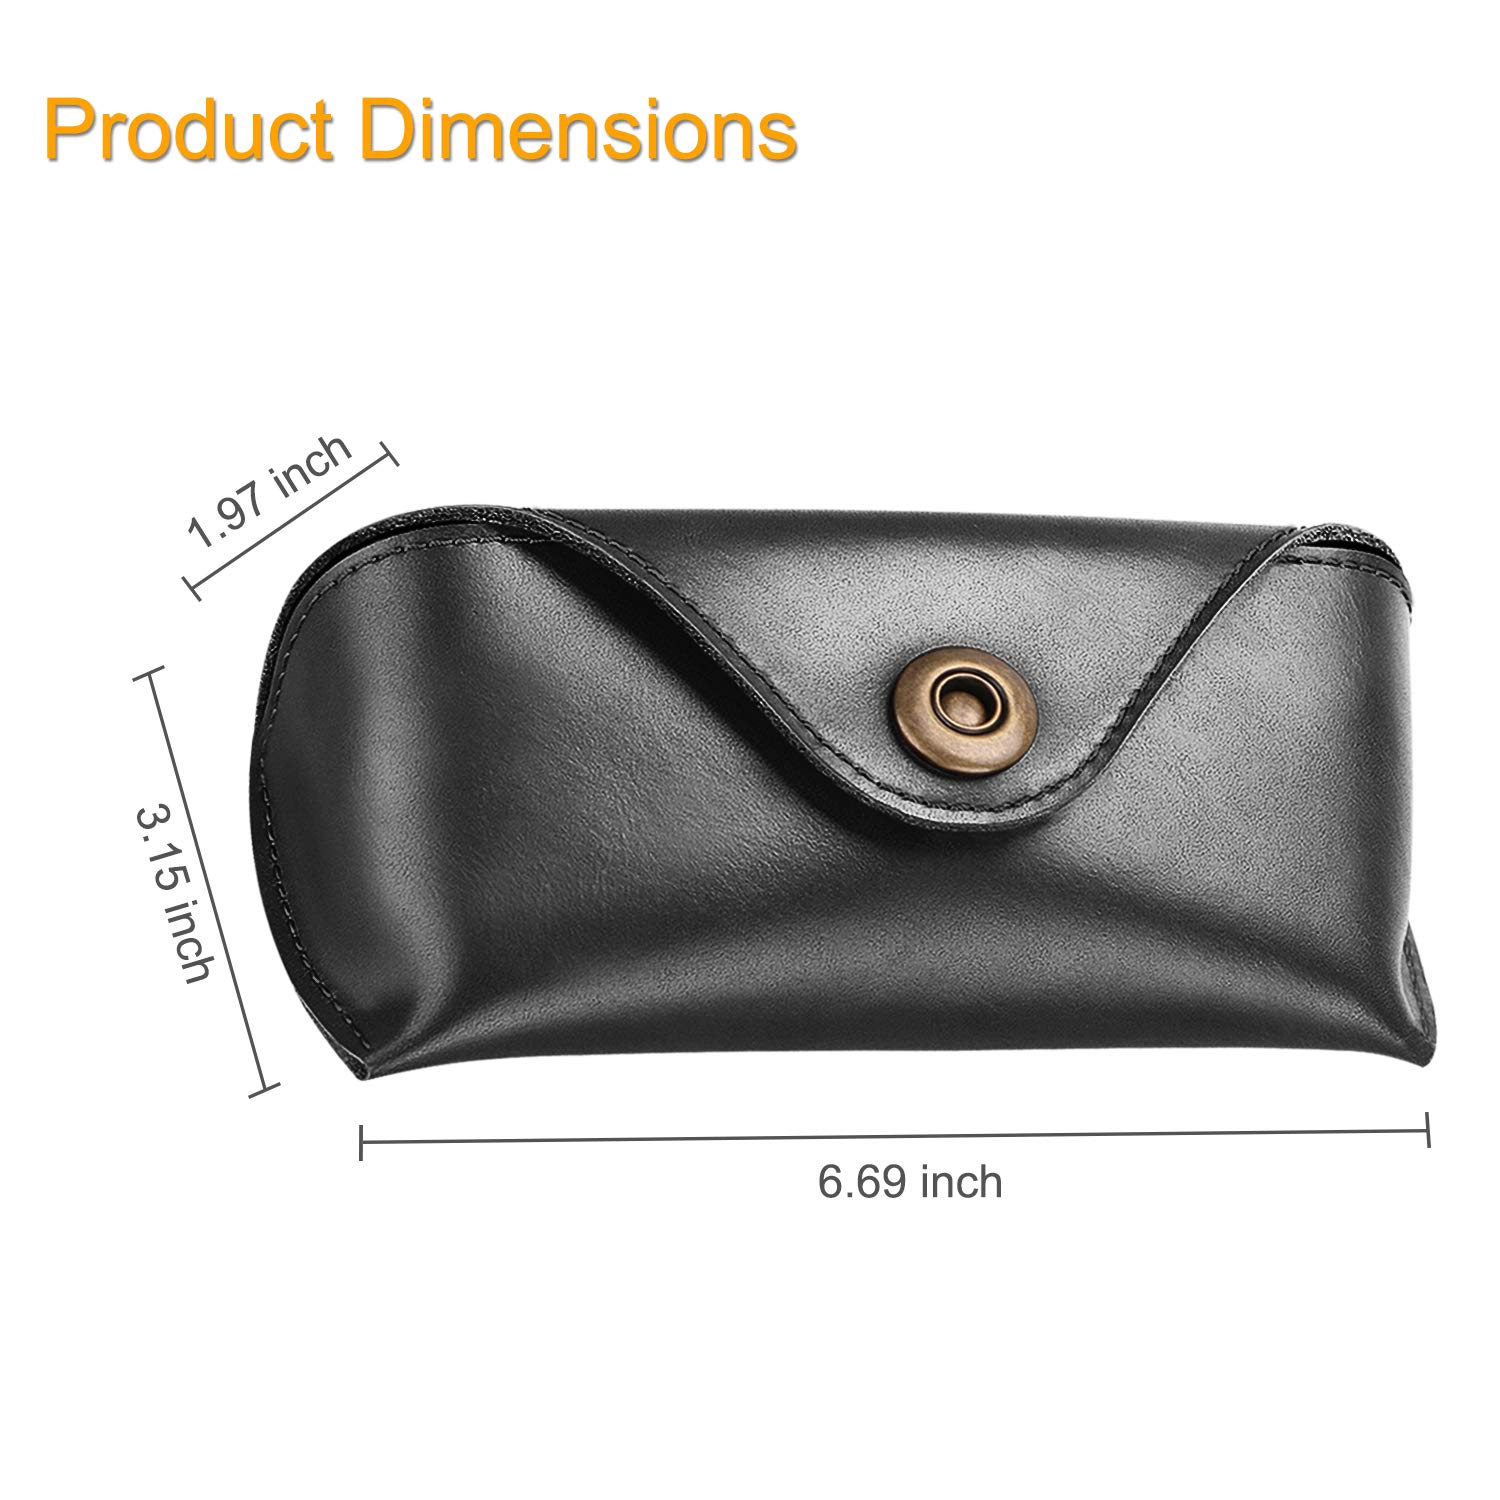 Fintie Portable Sunglasses Case, Semi-Hard Vegan Leather Glasses Carrying Case Eyewear Pouch with Snap Button Closure by Fintie (Image #4)